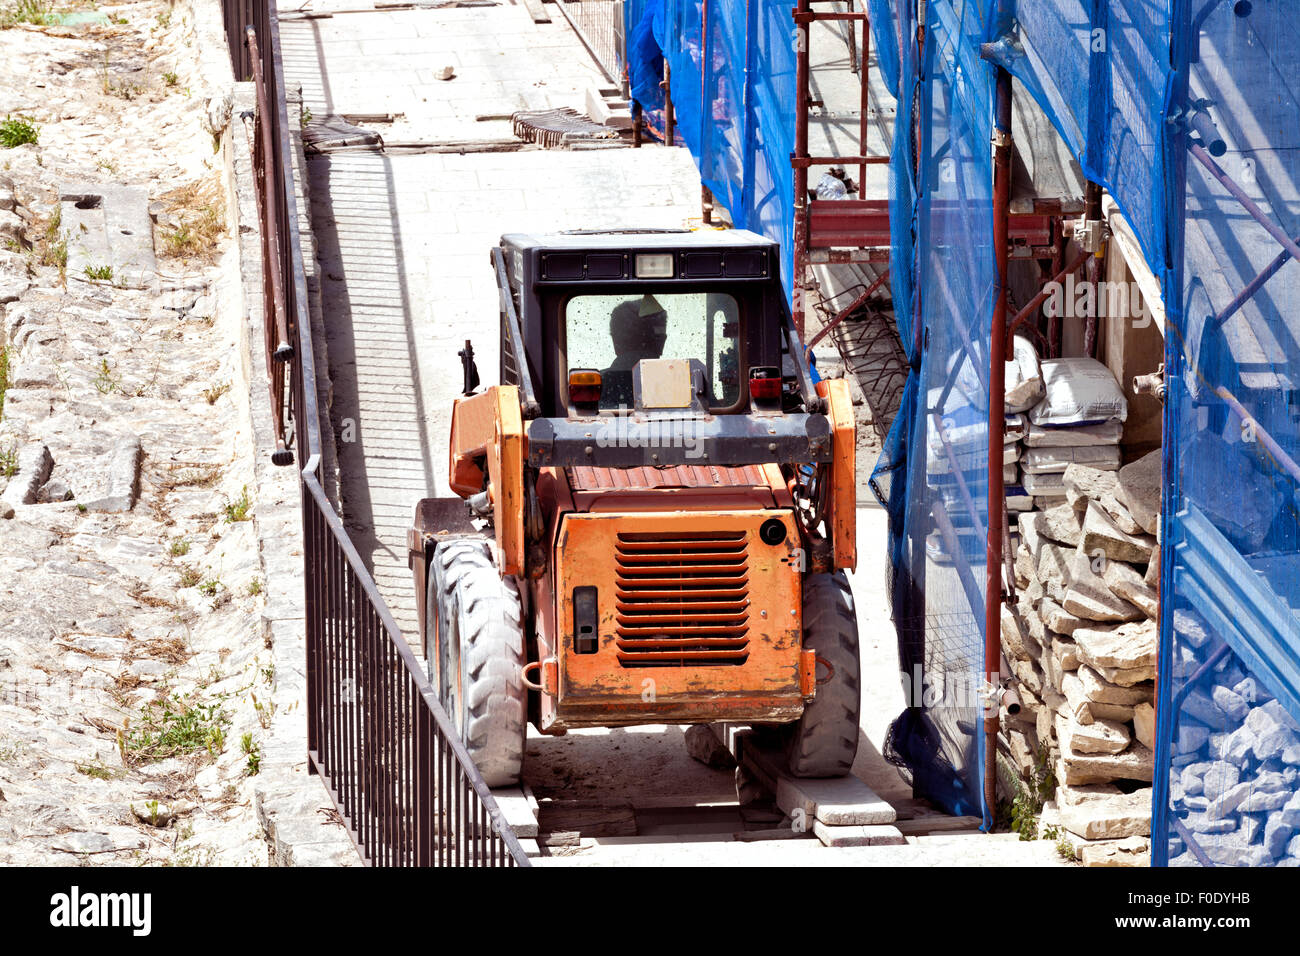 Small orange lifting vehicle going uphill on a building construction site, full of cement bags, stone slabs, with - Stock Image